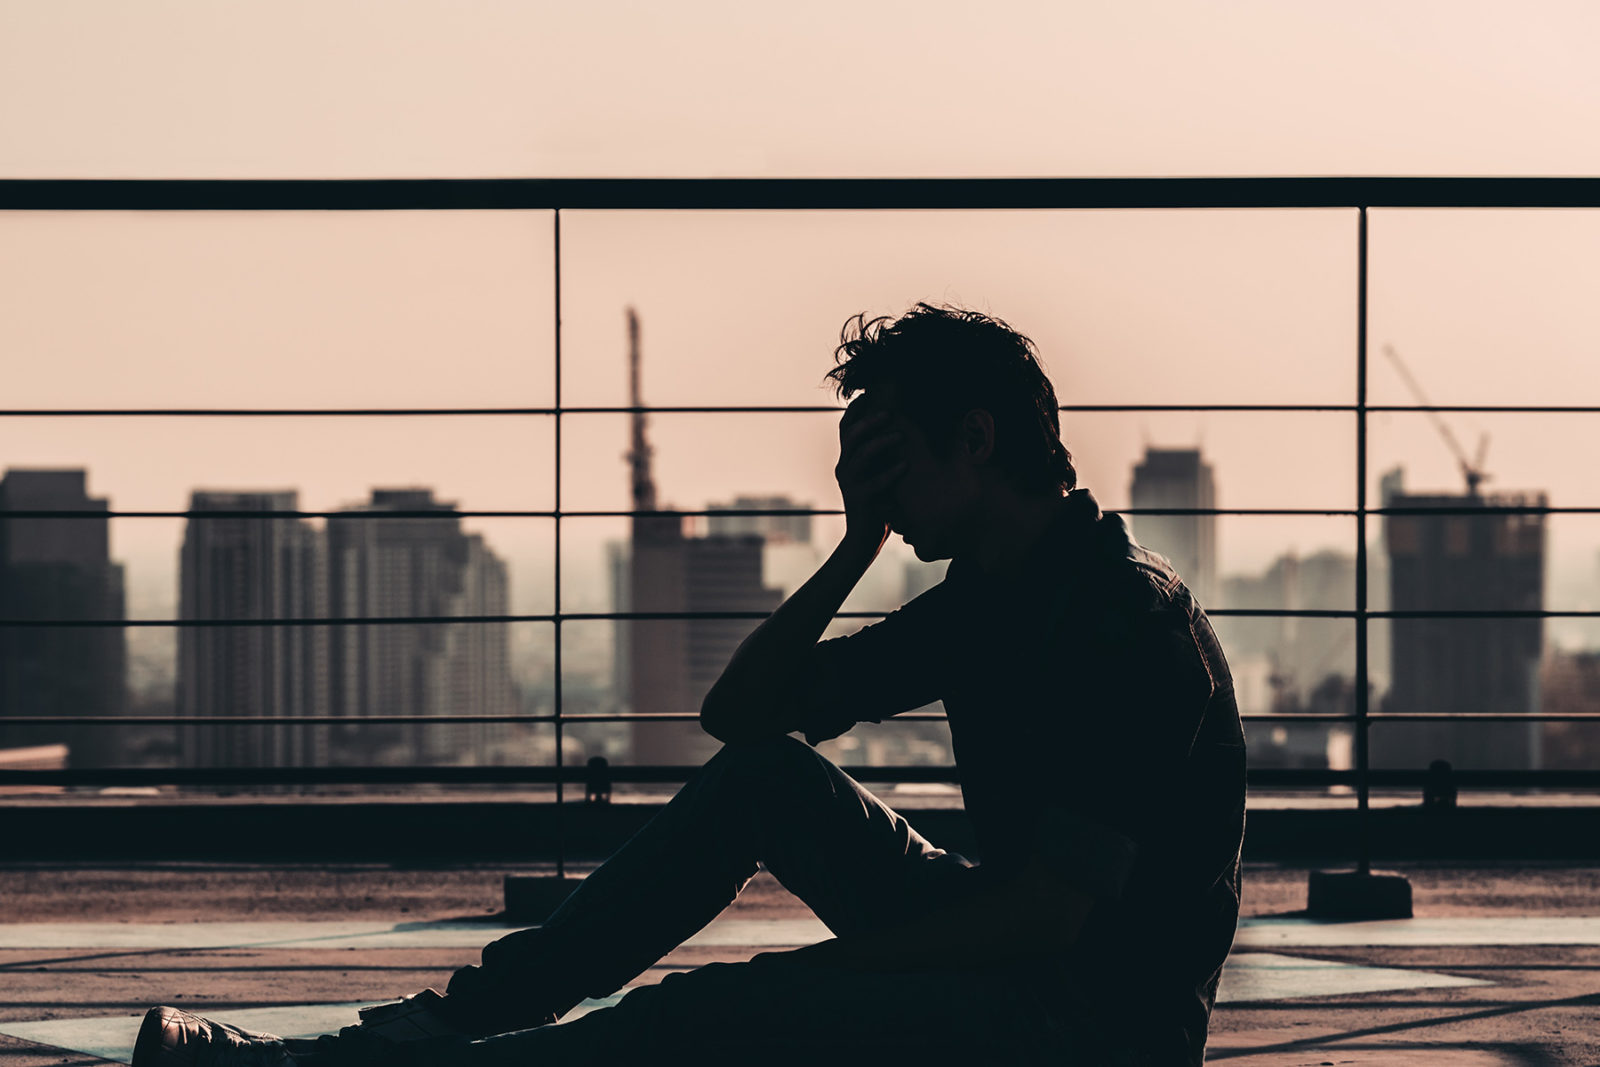 Man sitting with head in hands suffering depression